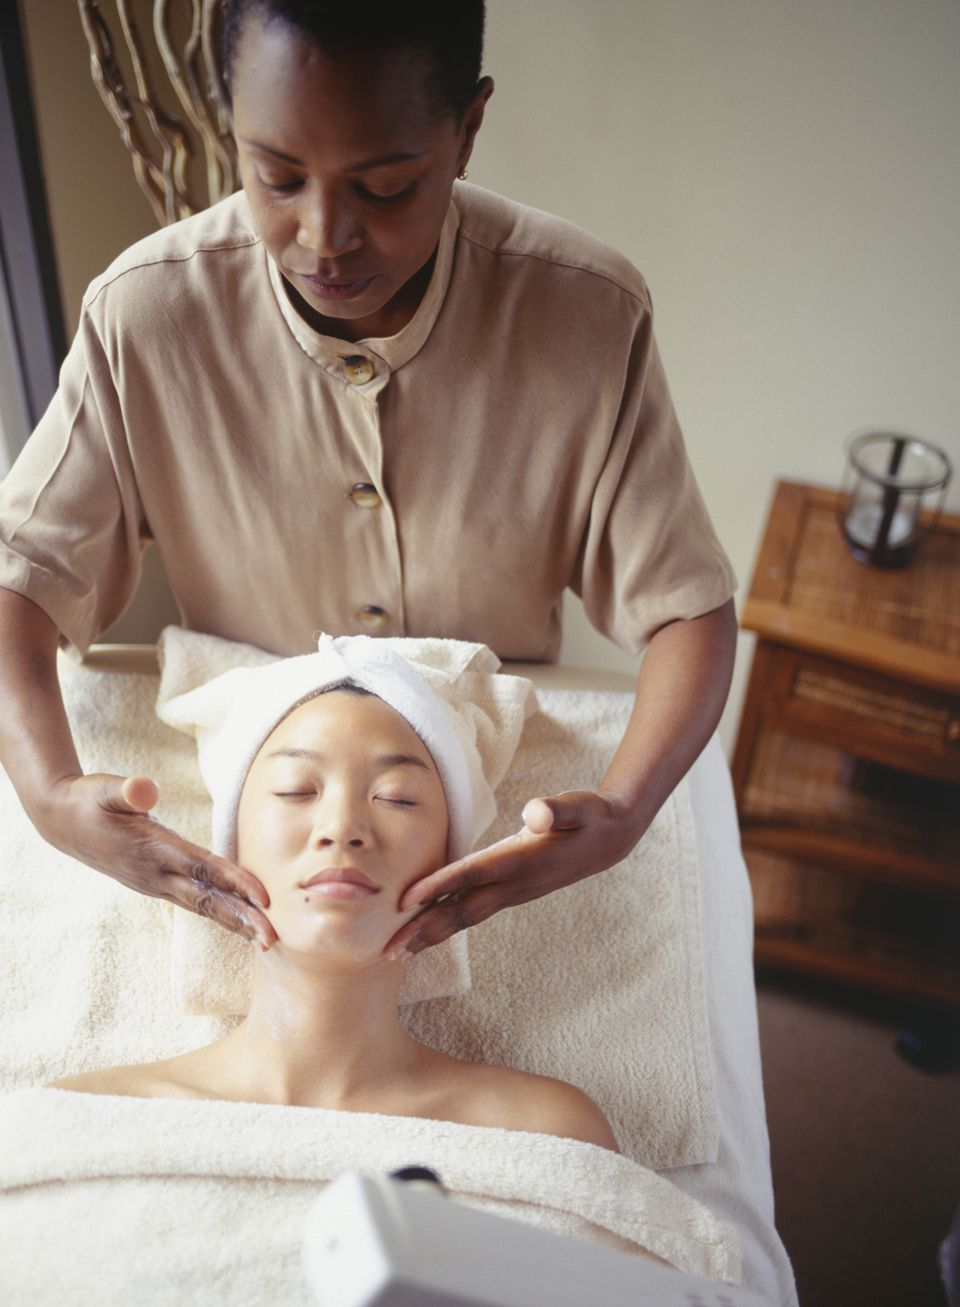 Woman massaging woman's face at spa